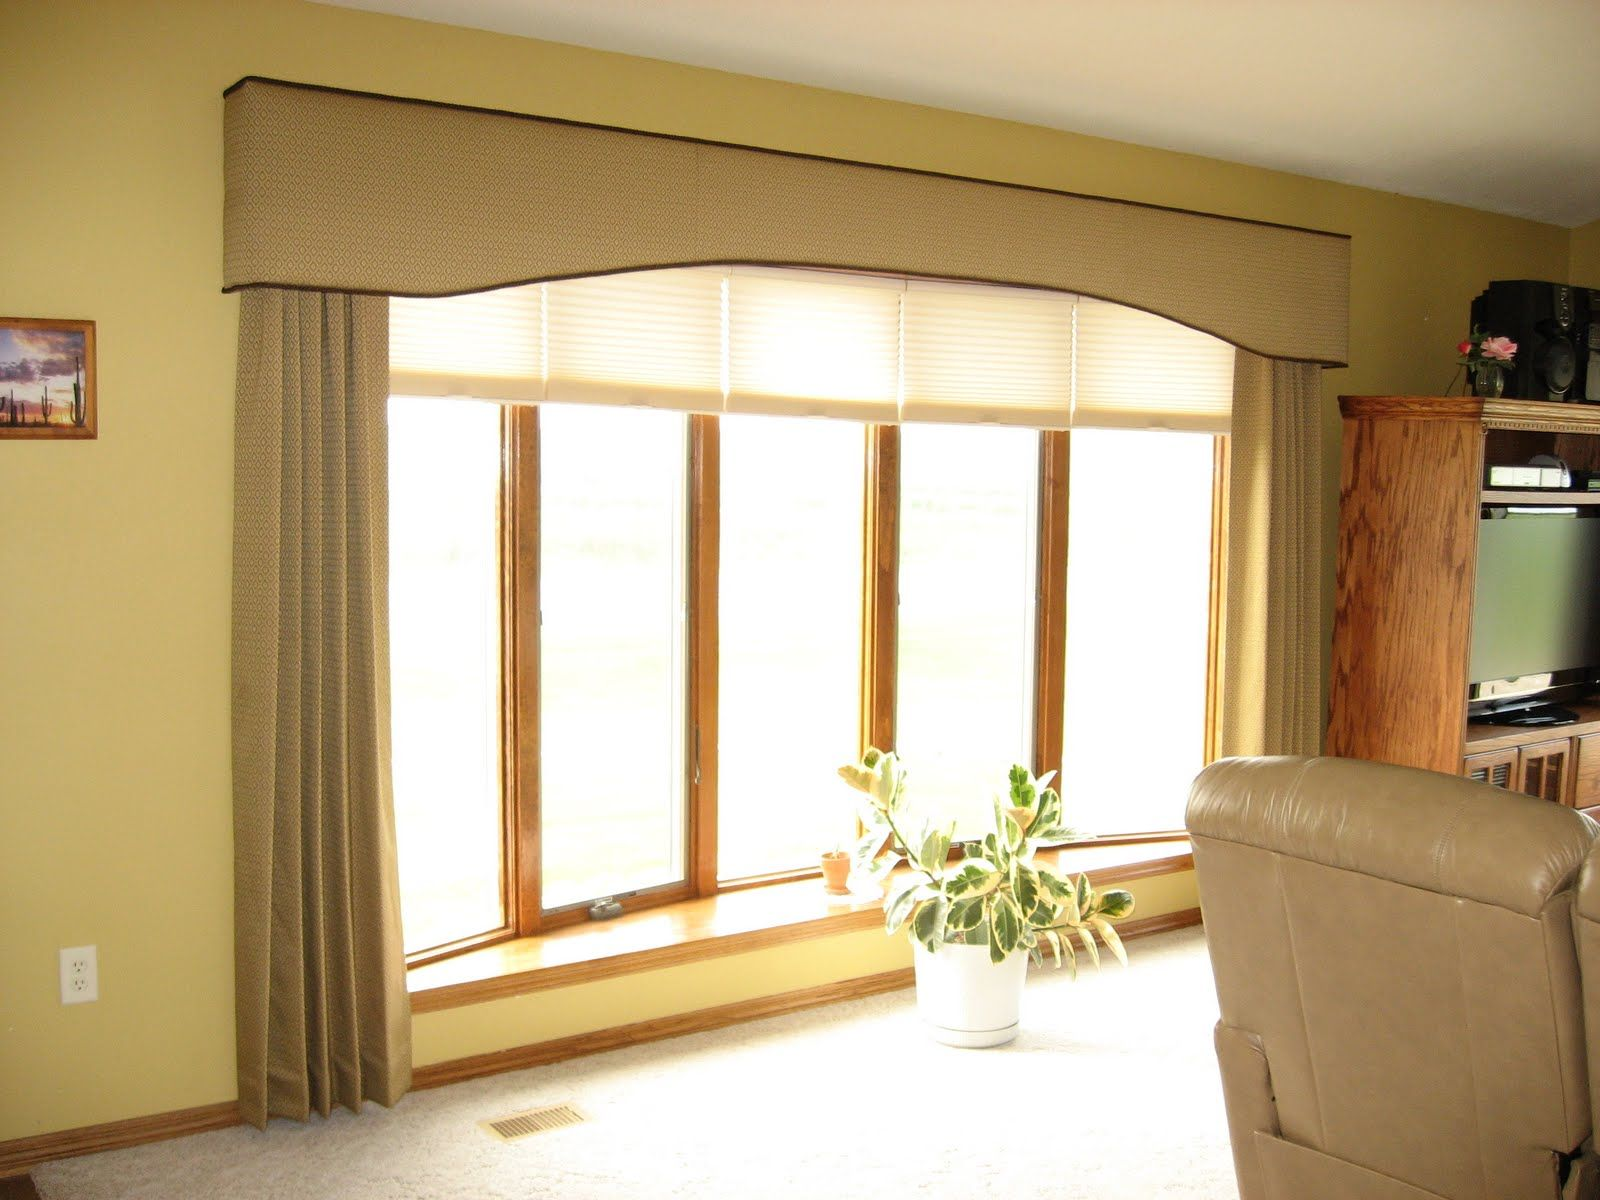 Premier Modern Natural Wood Shades Woven Wood Shades Wood Shades Select Blinds